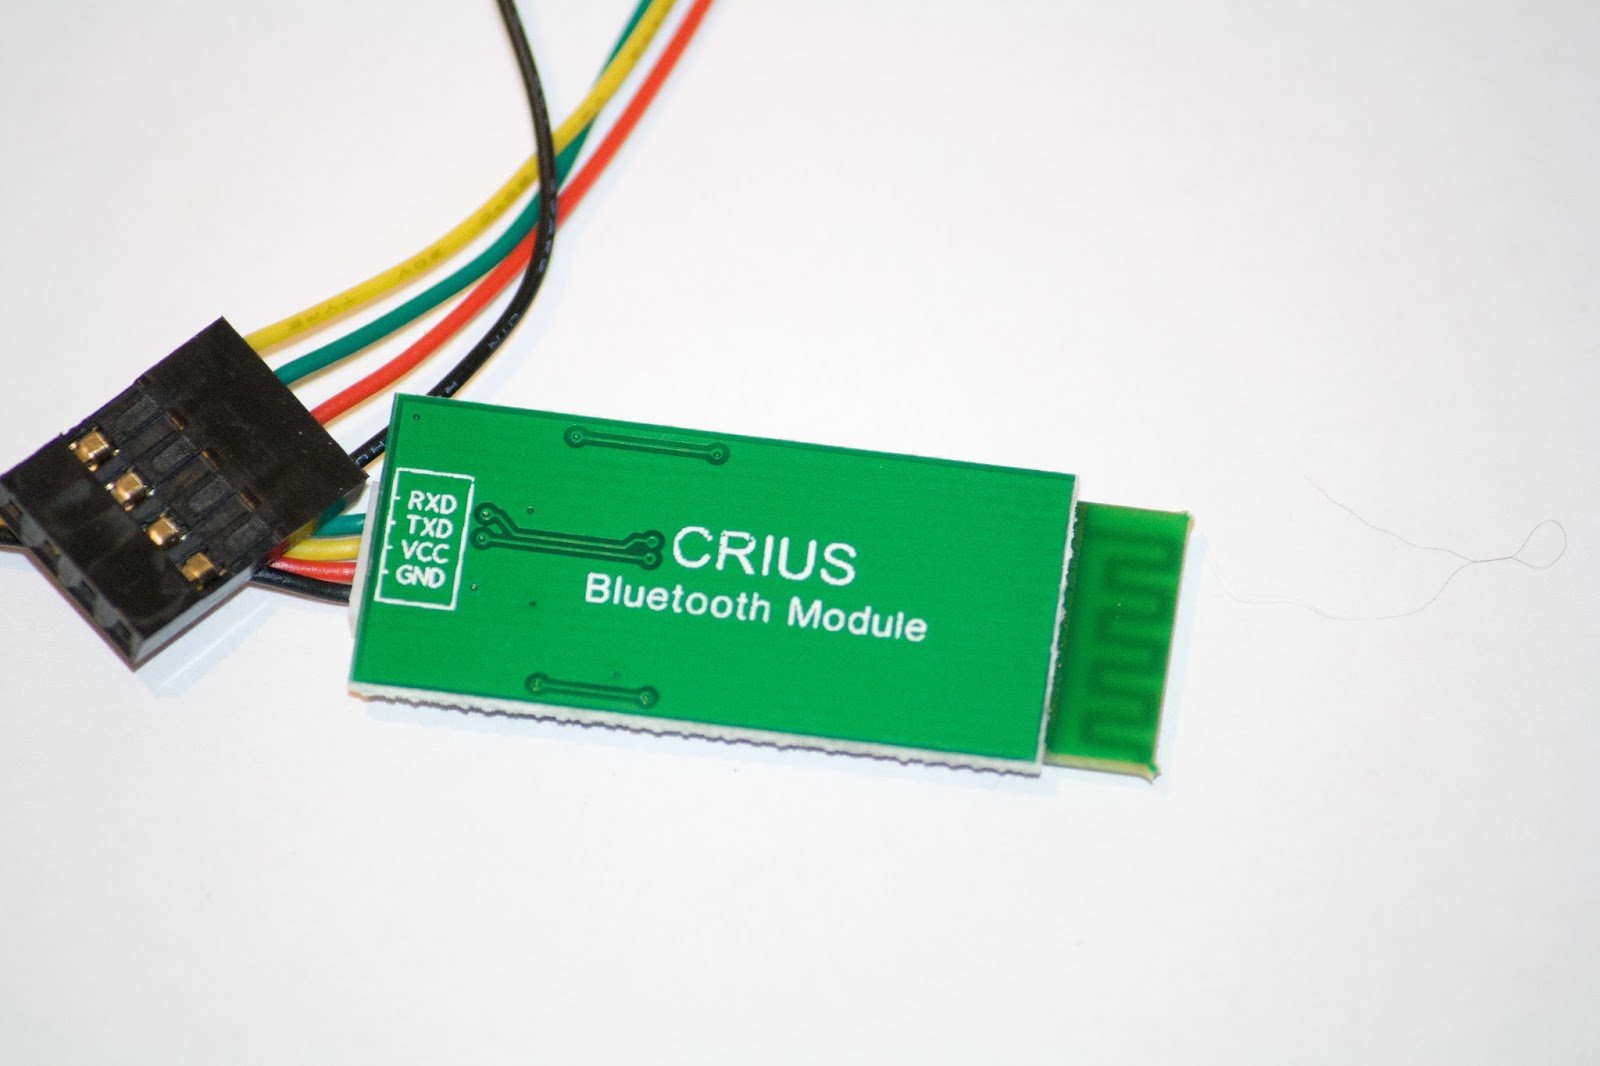 medium resolution of the board itself is a crius multiwii se v2 5 i bought this board not knowing much about the configuration process but i am having difficulty finding